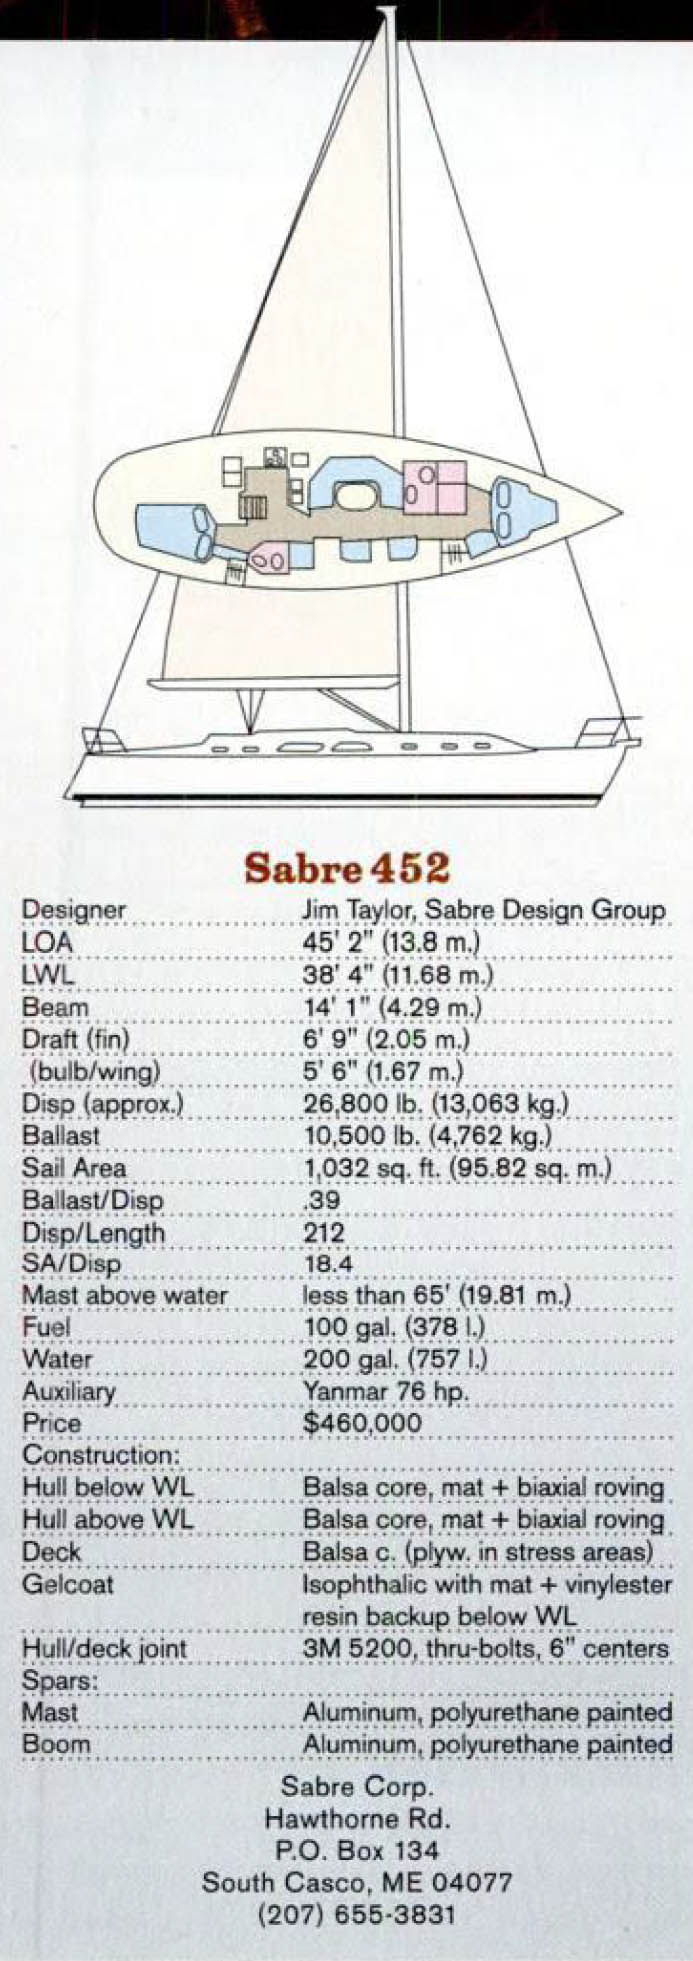 Sabre 452 Specifications